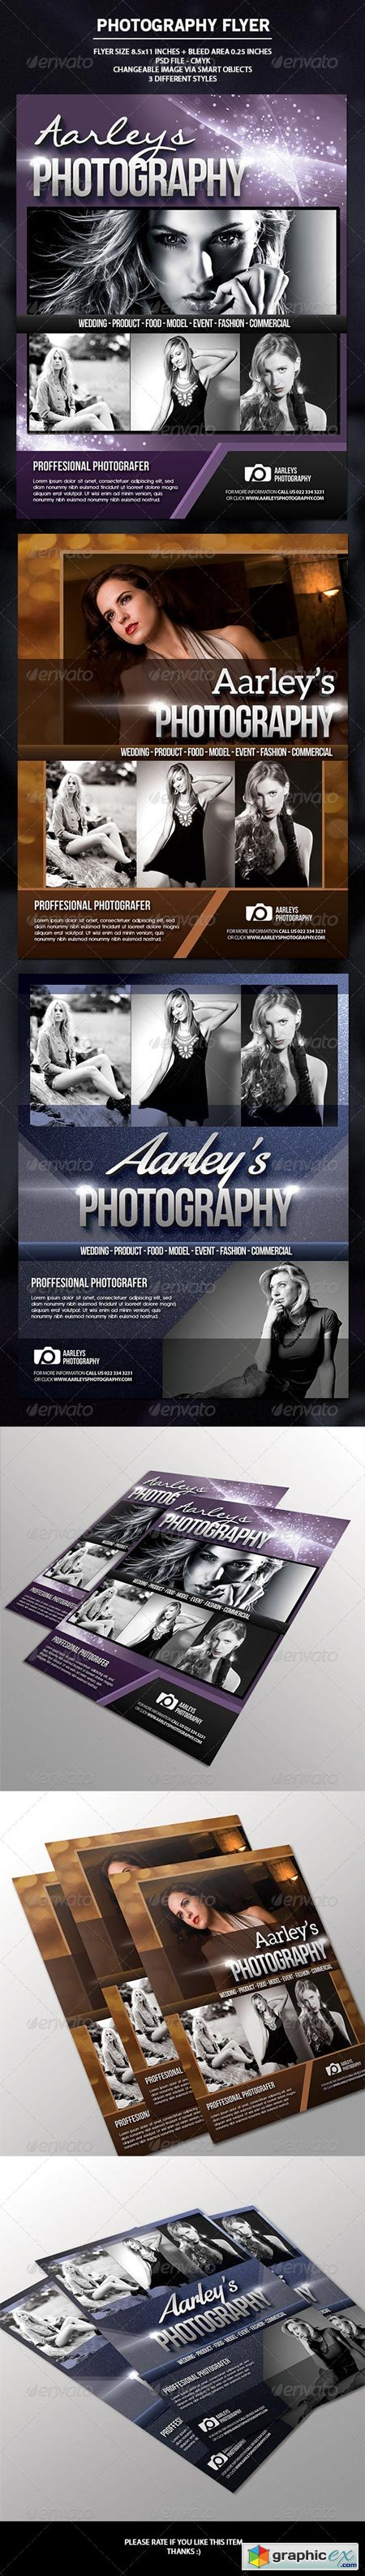 Photography Flyer 6962526